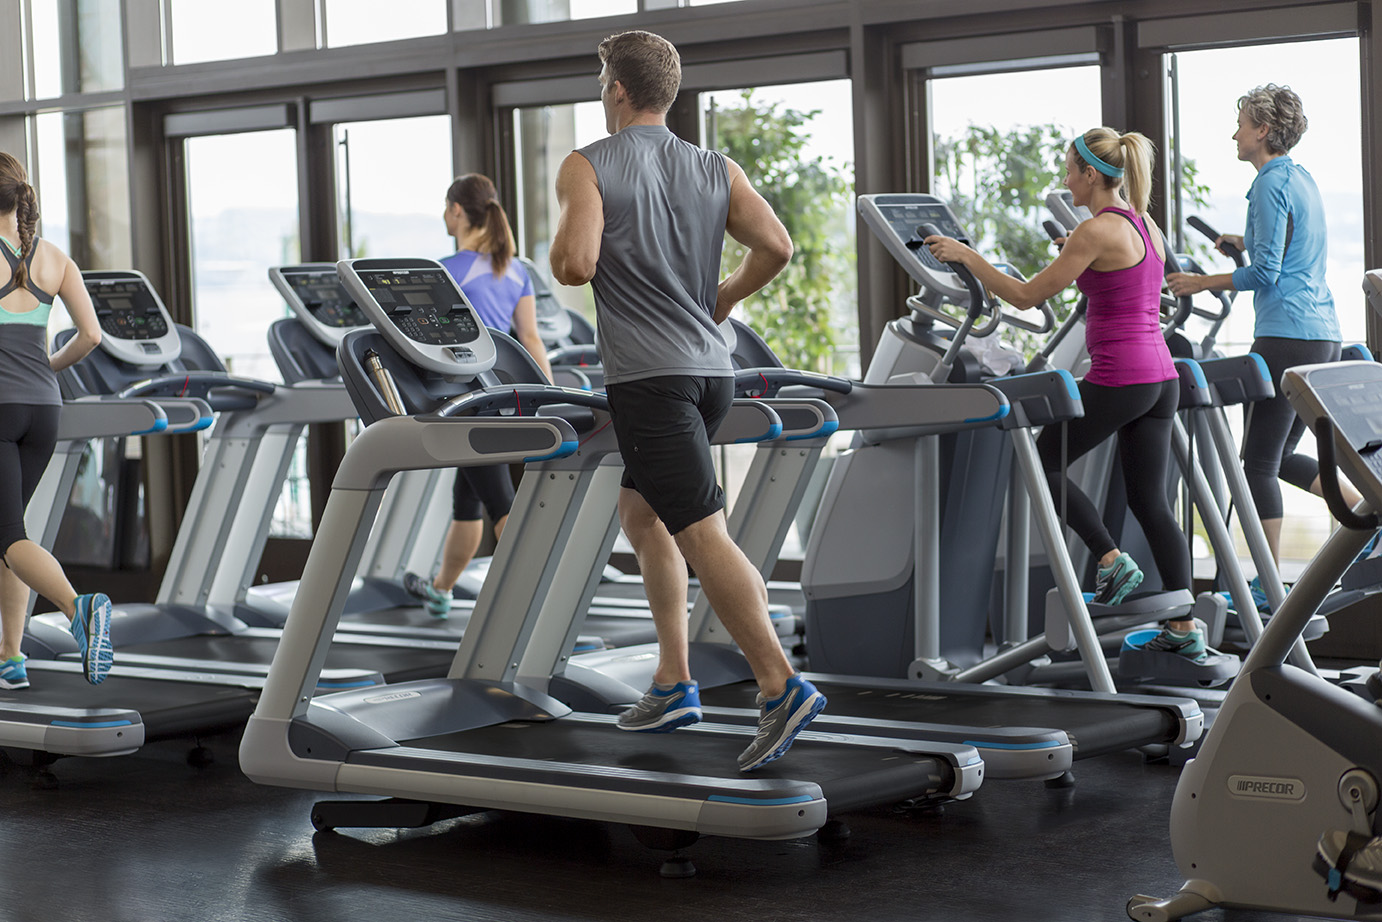 A group of people exercise on Precor TRM 835 treadmills and AMT 835 Adaptive Motion Trainers with P30 consoles at a fitness club.